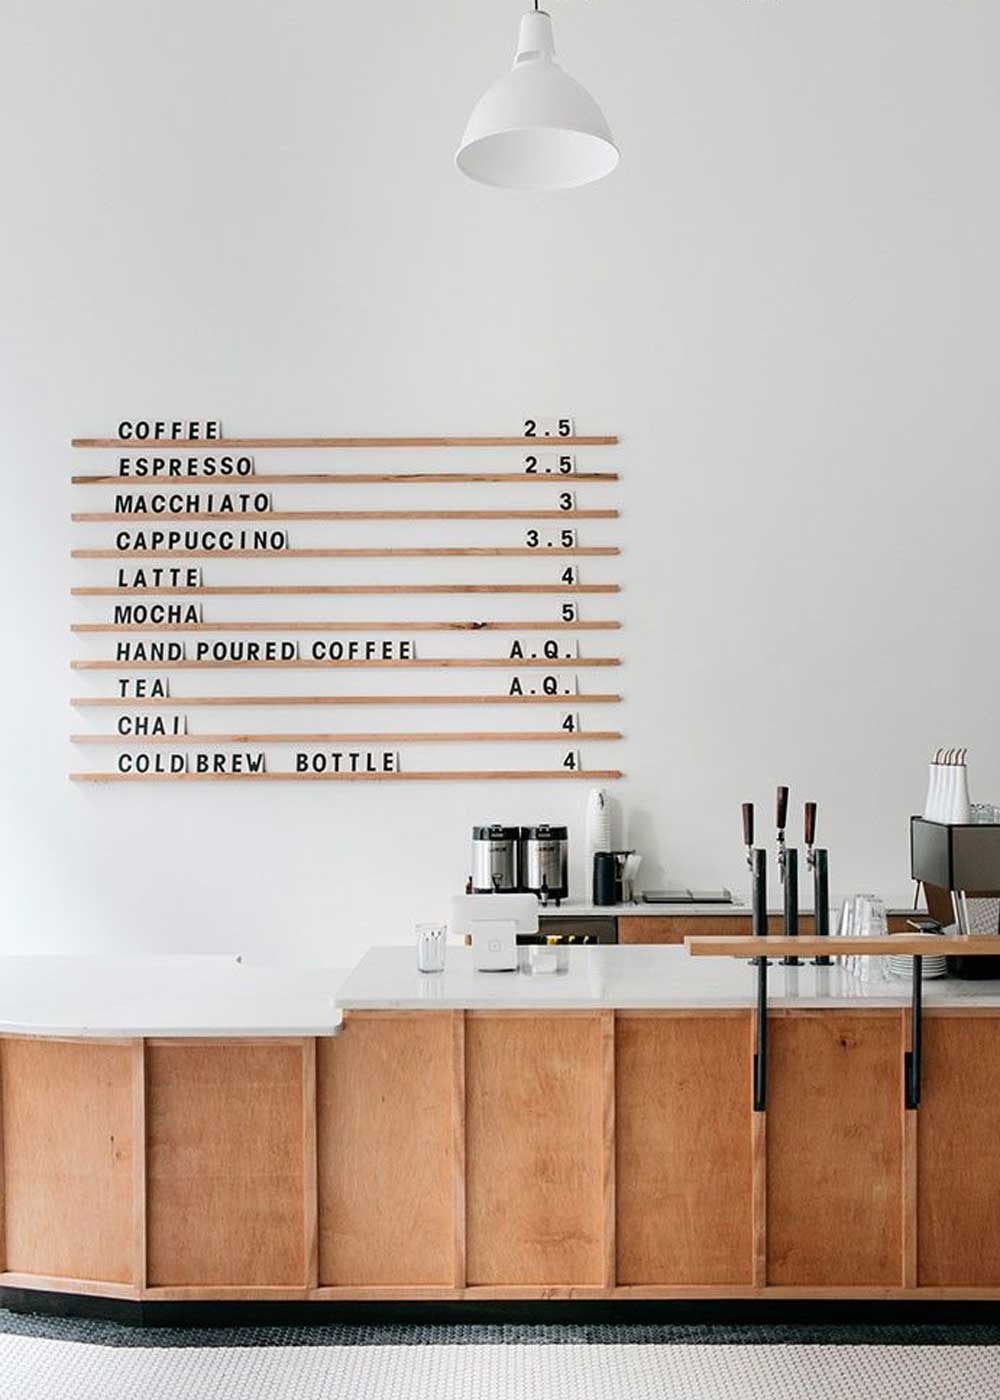 Menu Board from Passenger Coffee